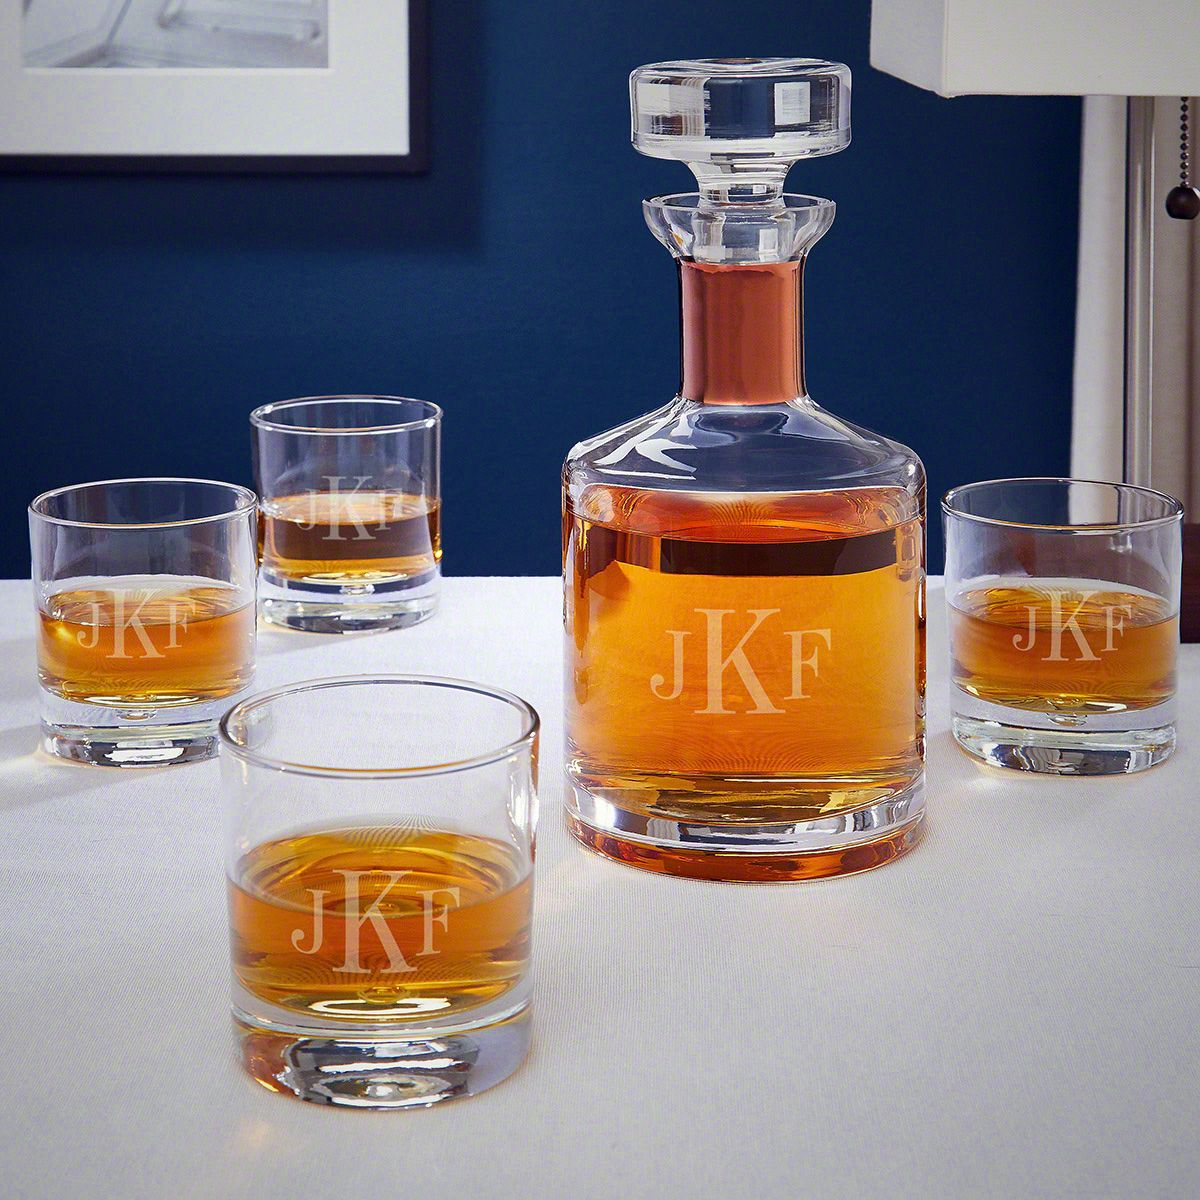 Classic Monogrammed Rocks Glasses and Decanter with Copper Collar